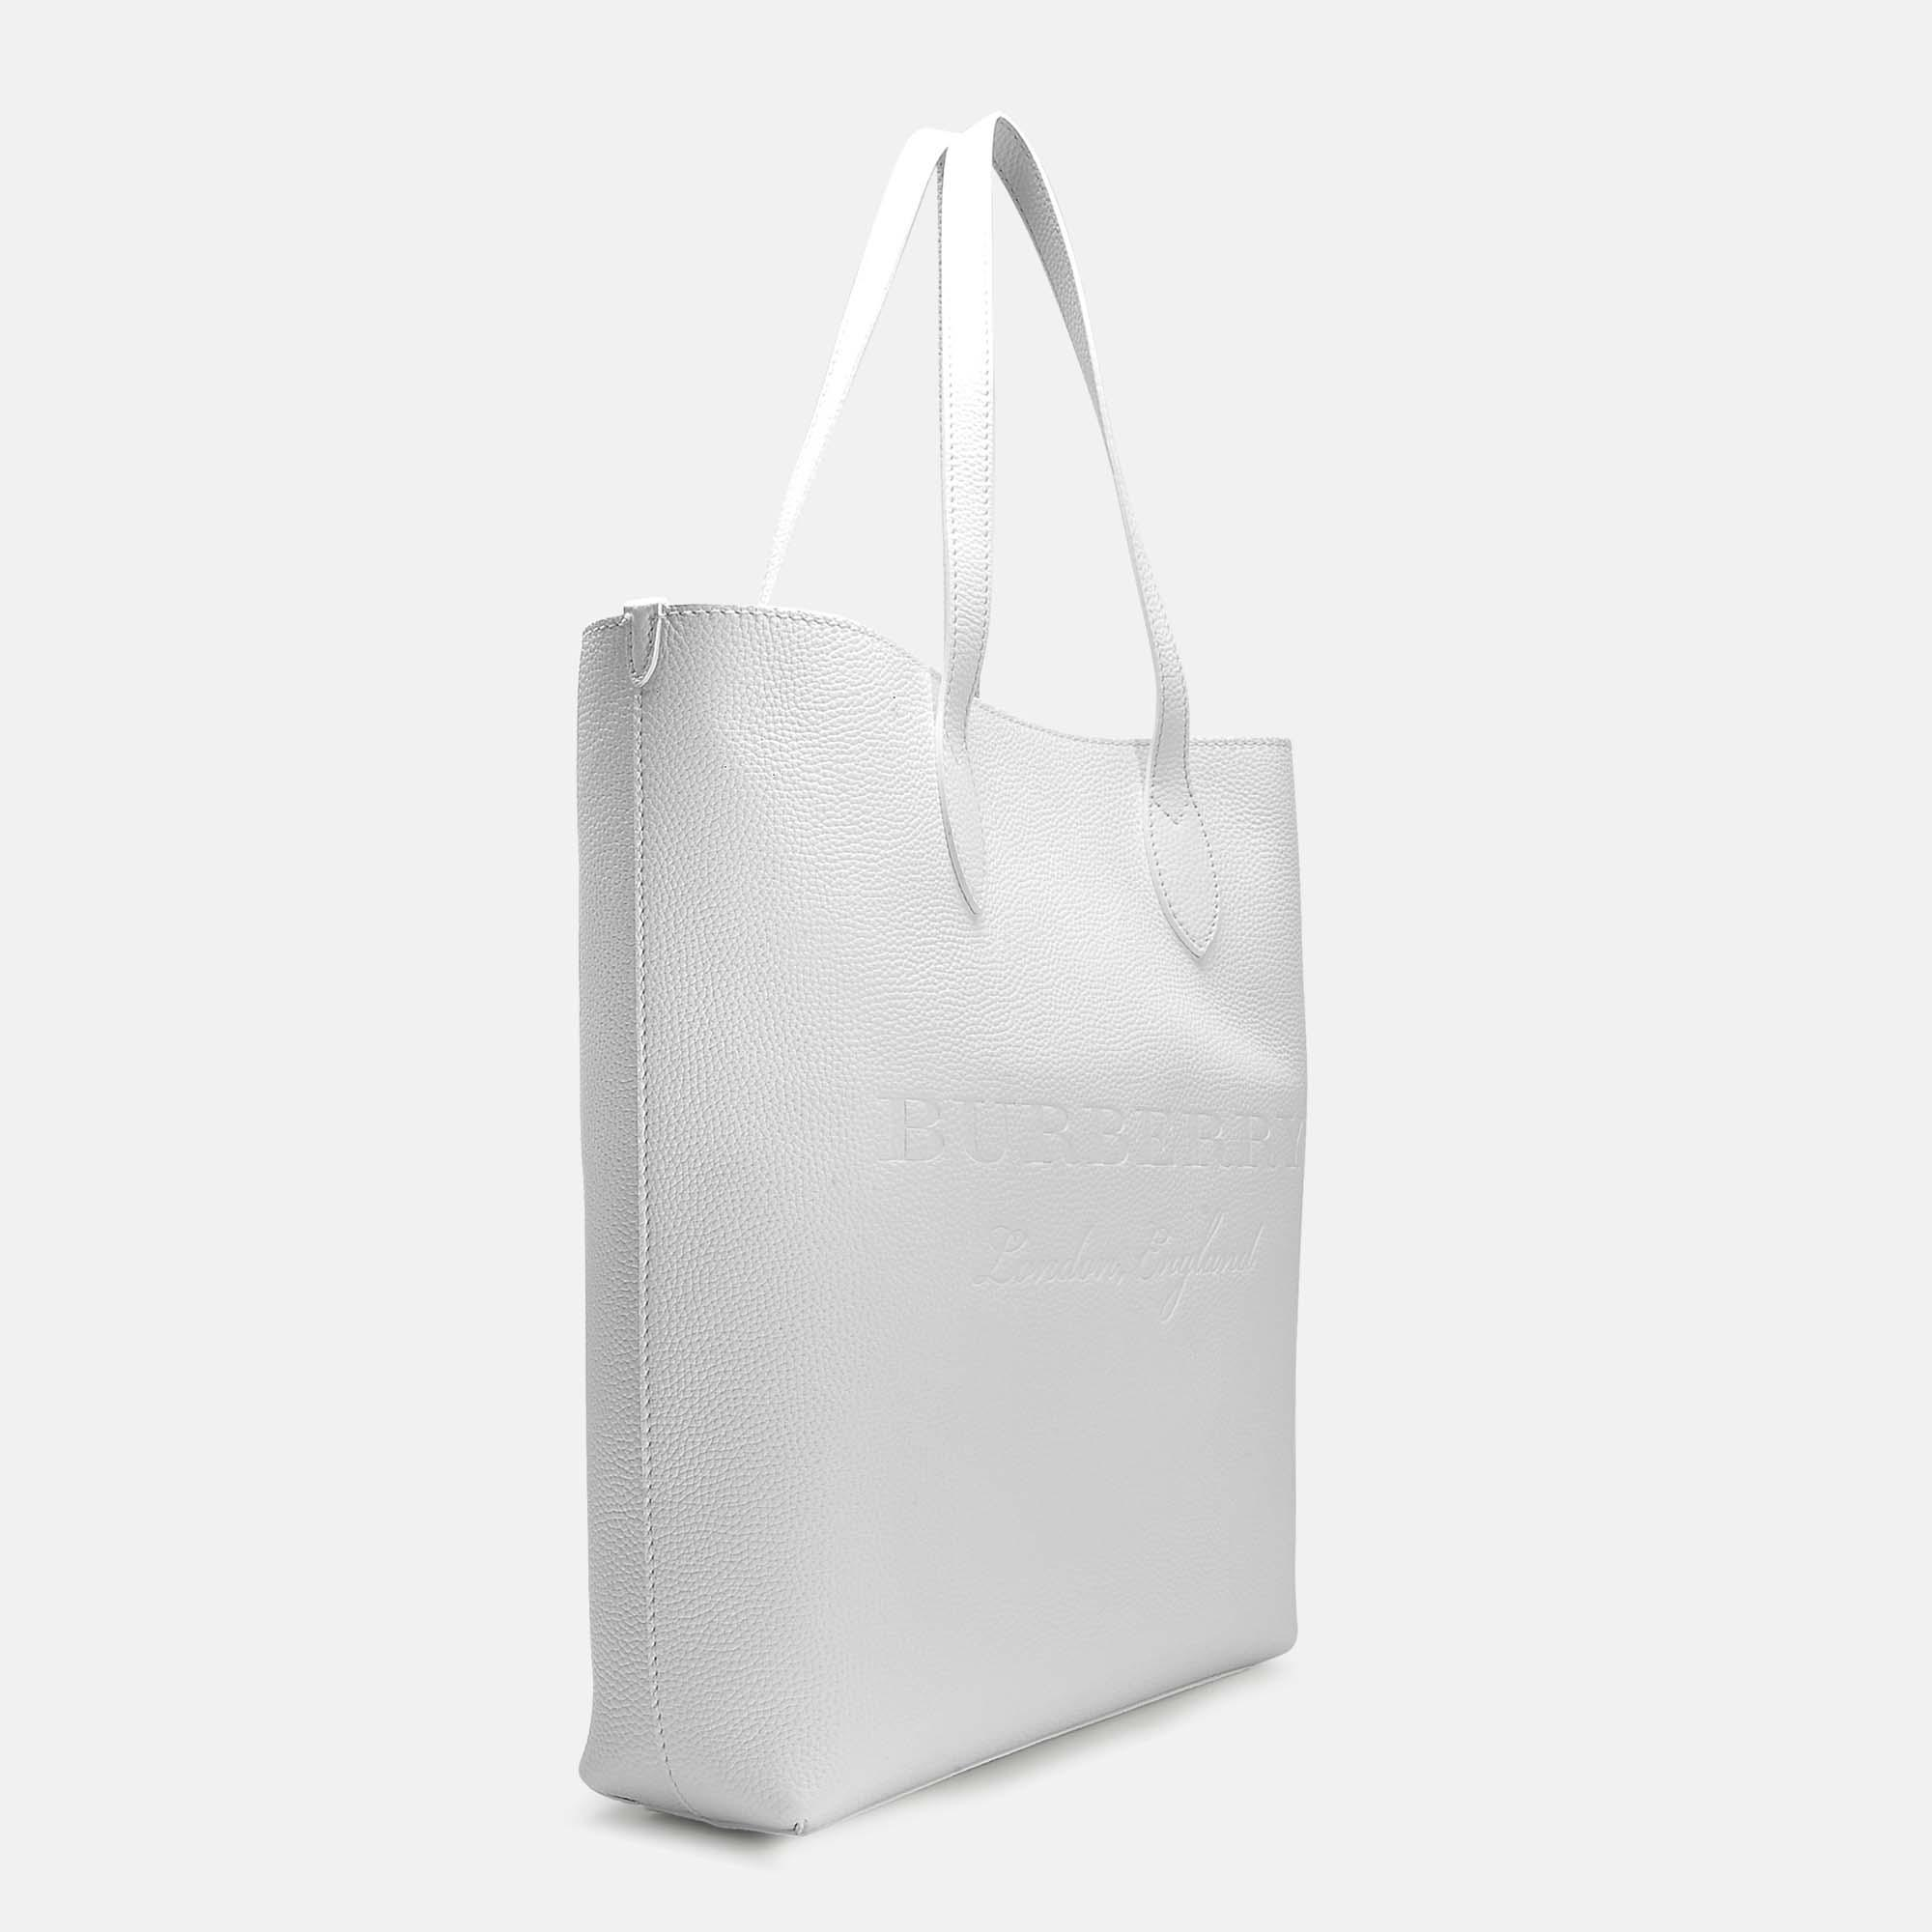 Lyst - Burberry Large Remington Tote Bag In Chalk White Grained Calfskin 3248b4fabd118